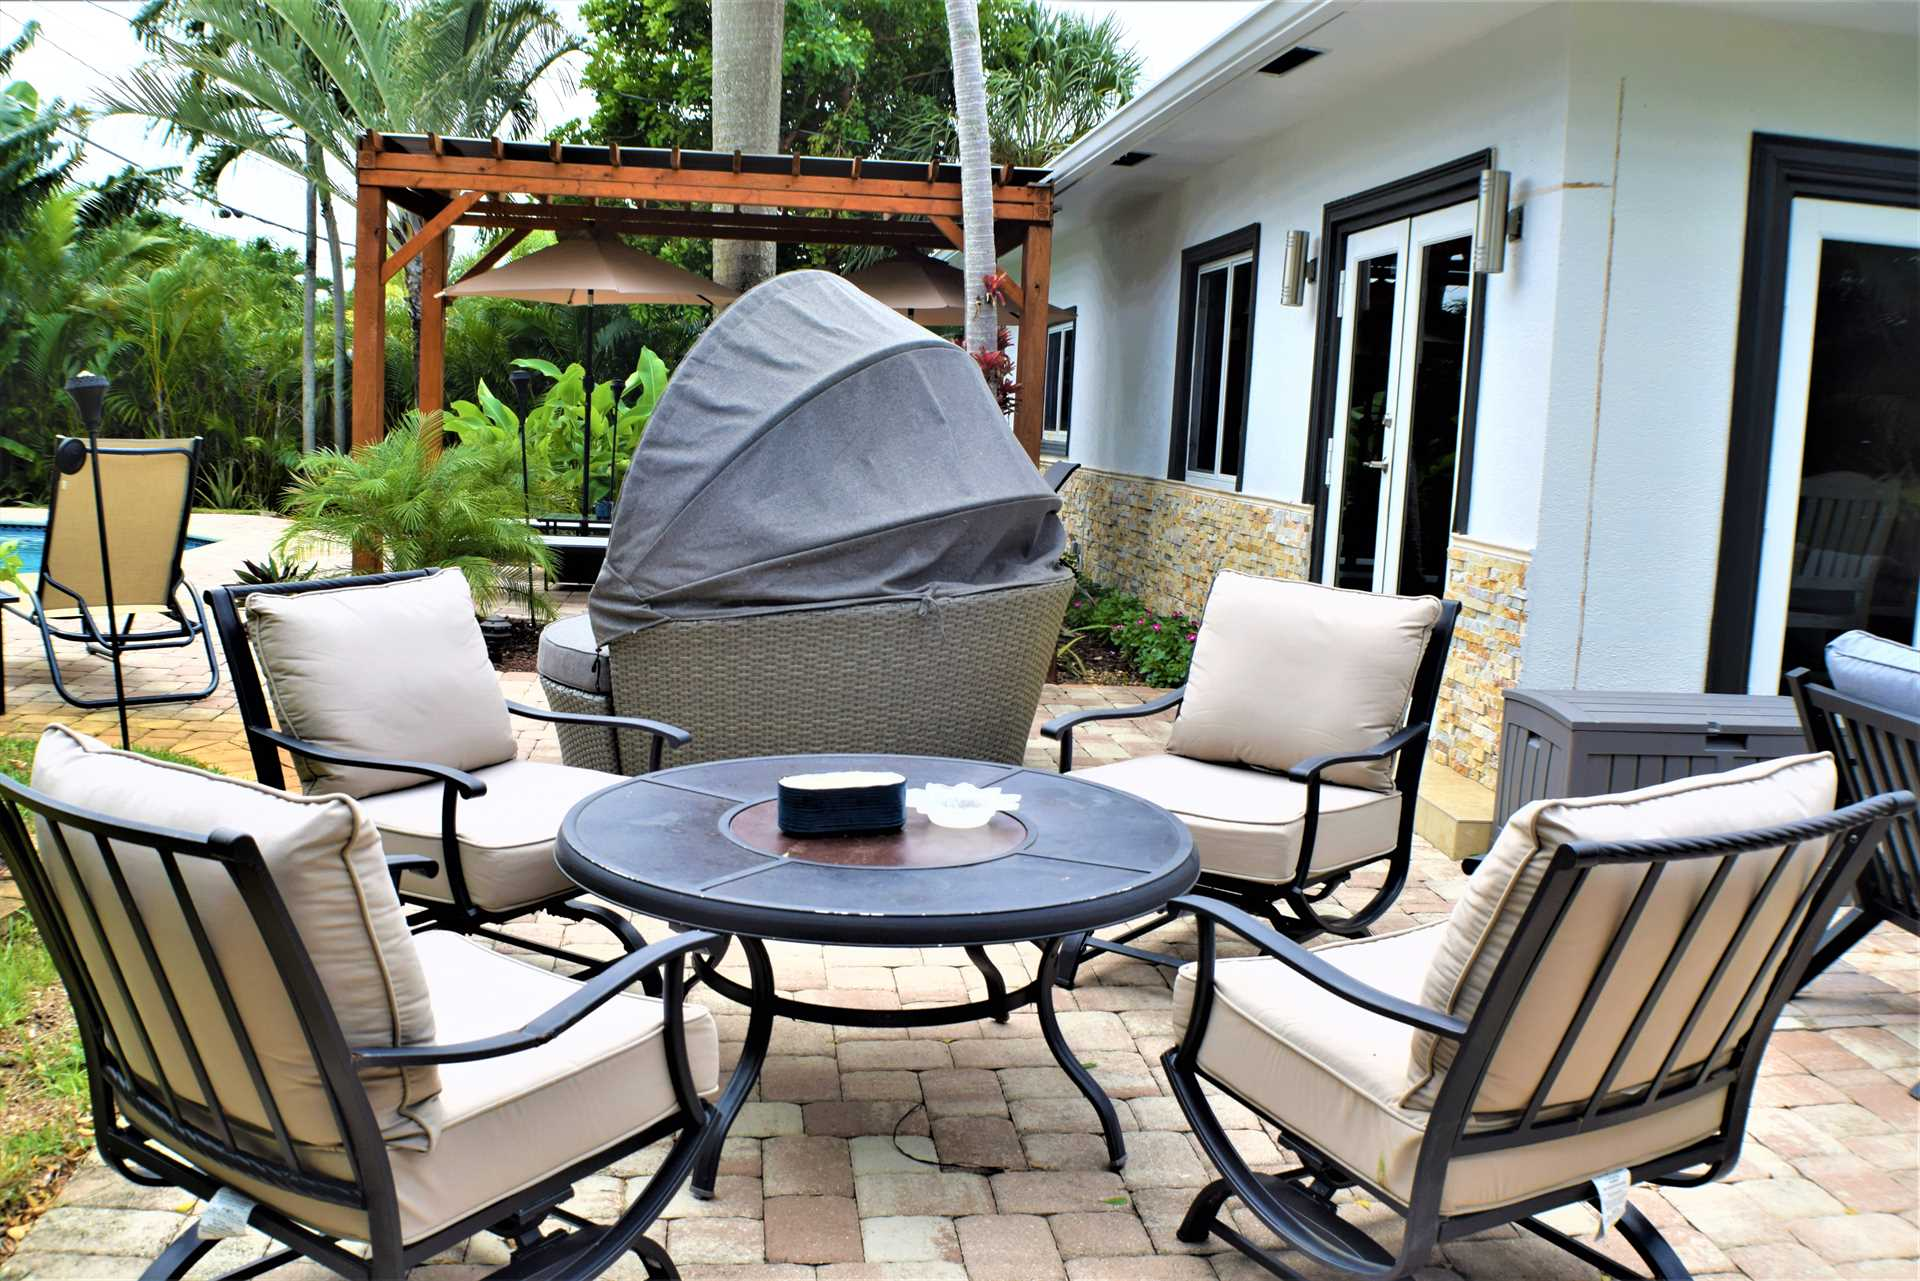 Dine poolside and experience the South Florida lifestyle